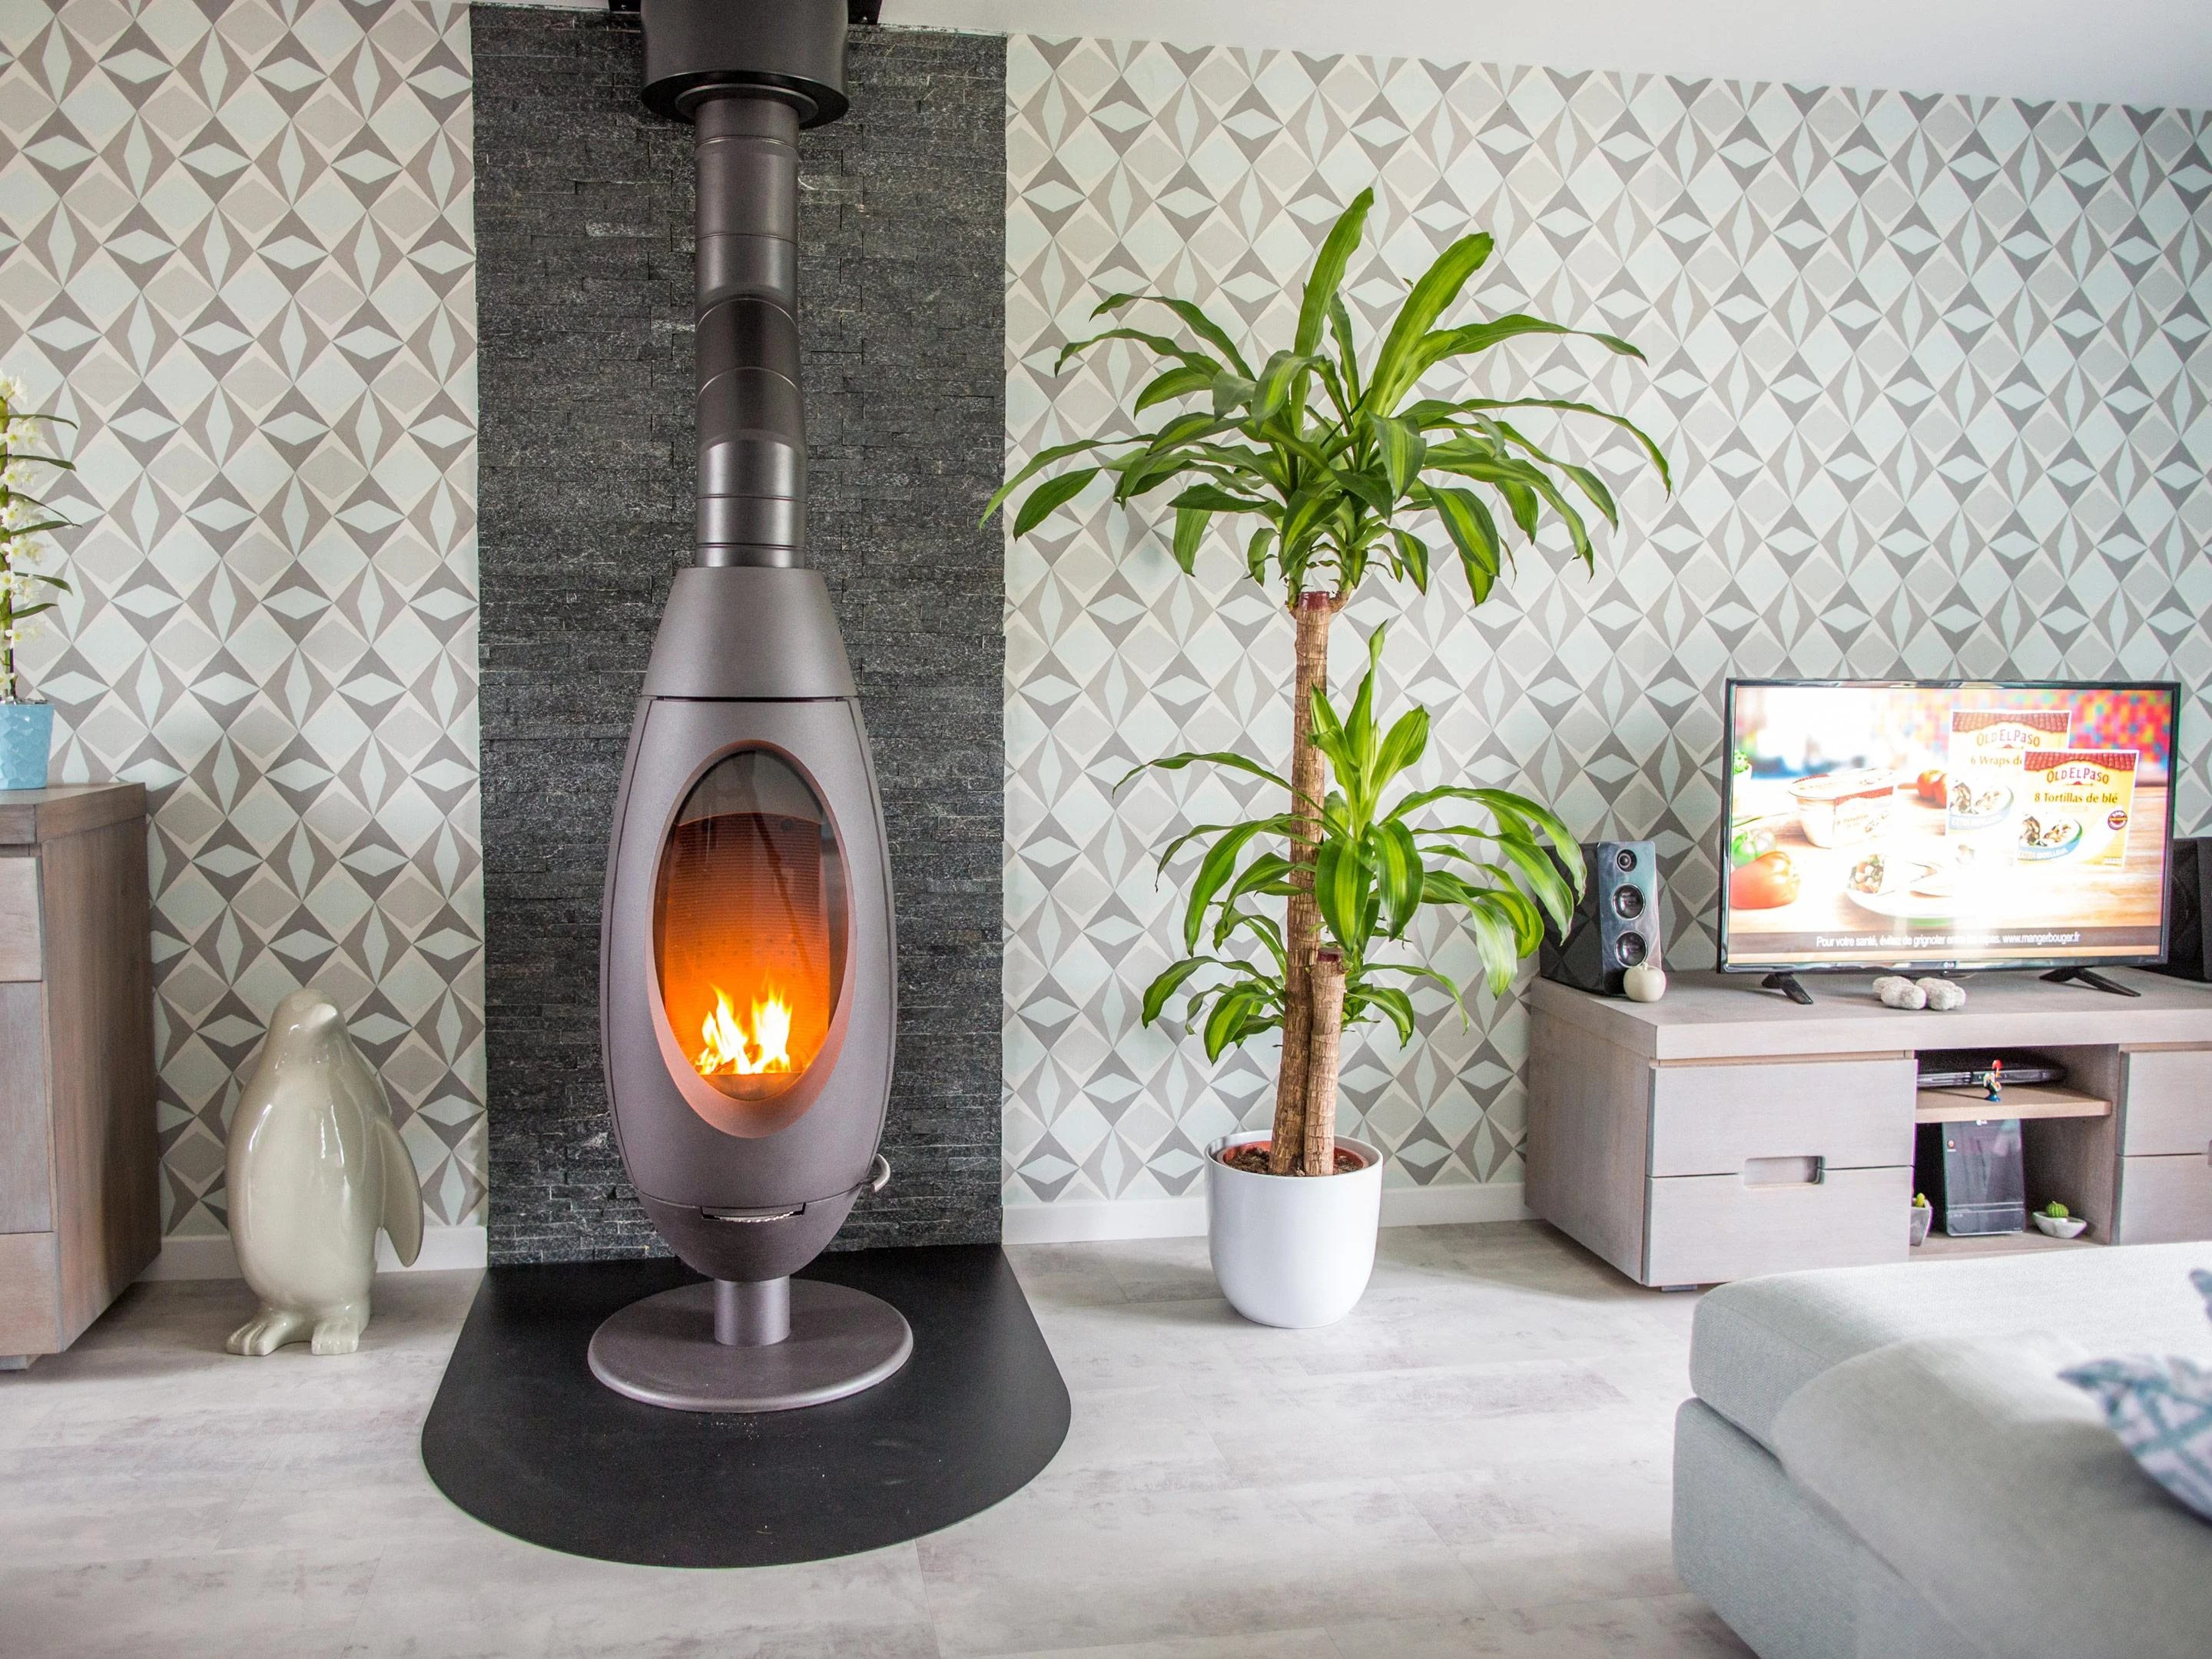 Cheminees Philippe Rivedoux 9kw Poêle à Bois Invicta Ove Anthracite 6149 44 10 Kw